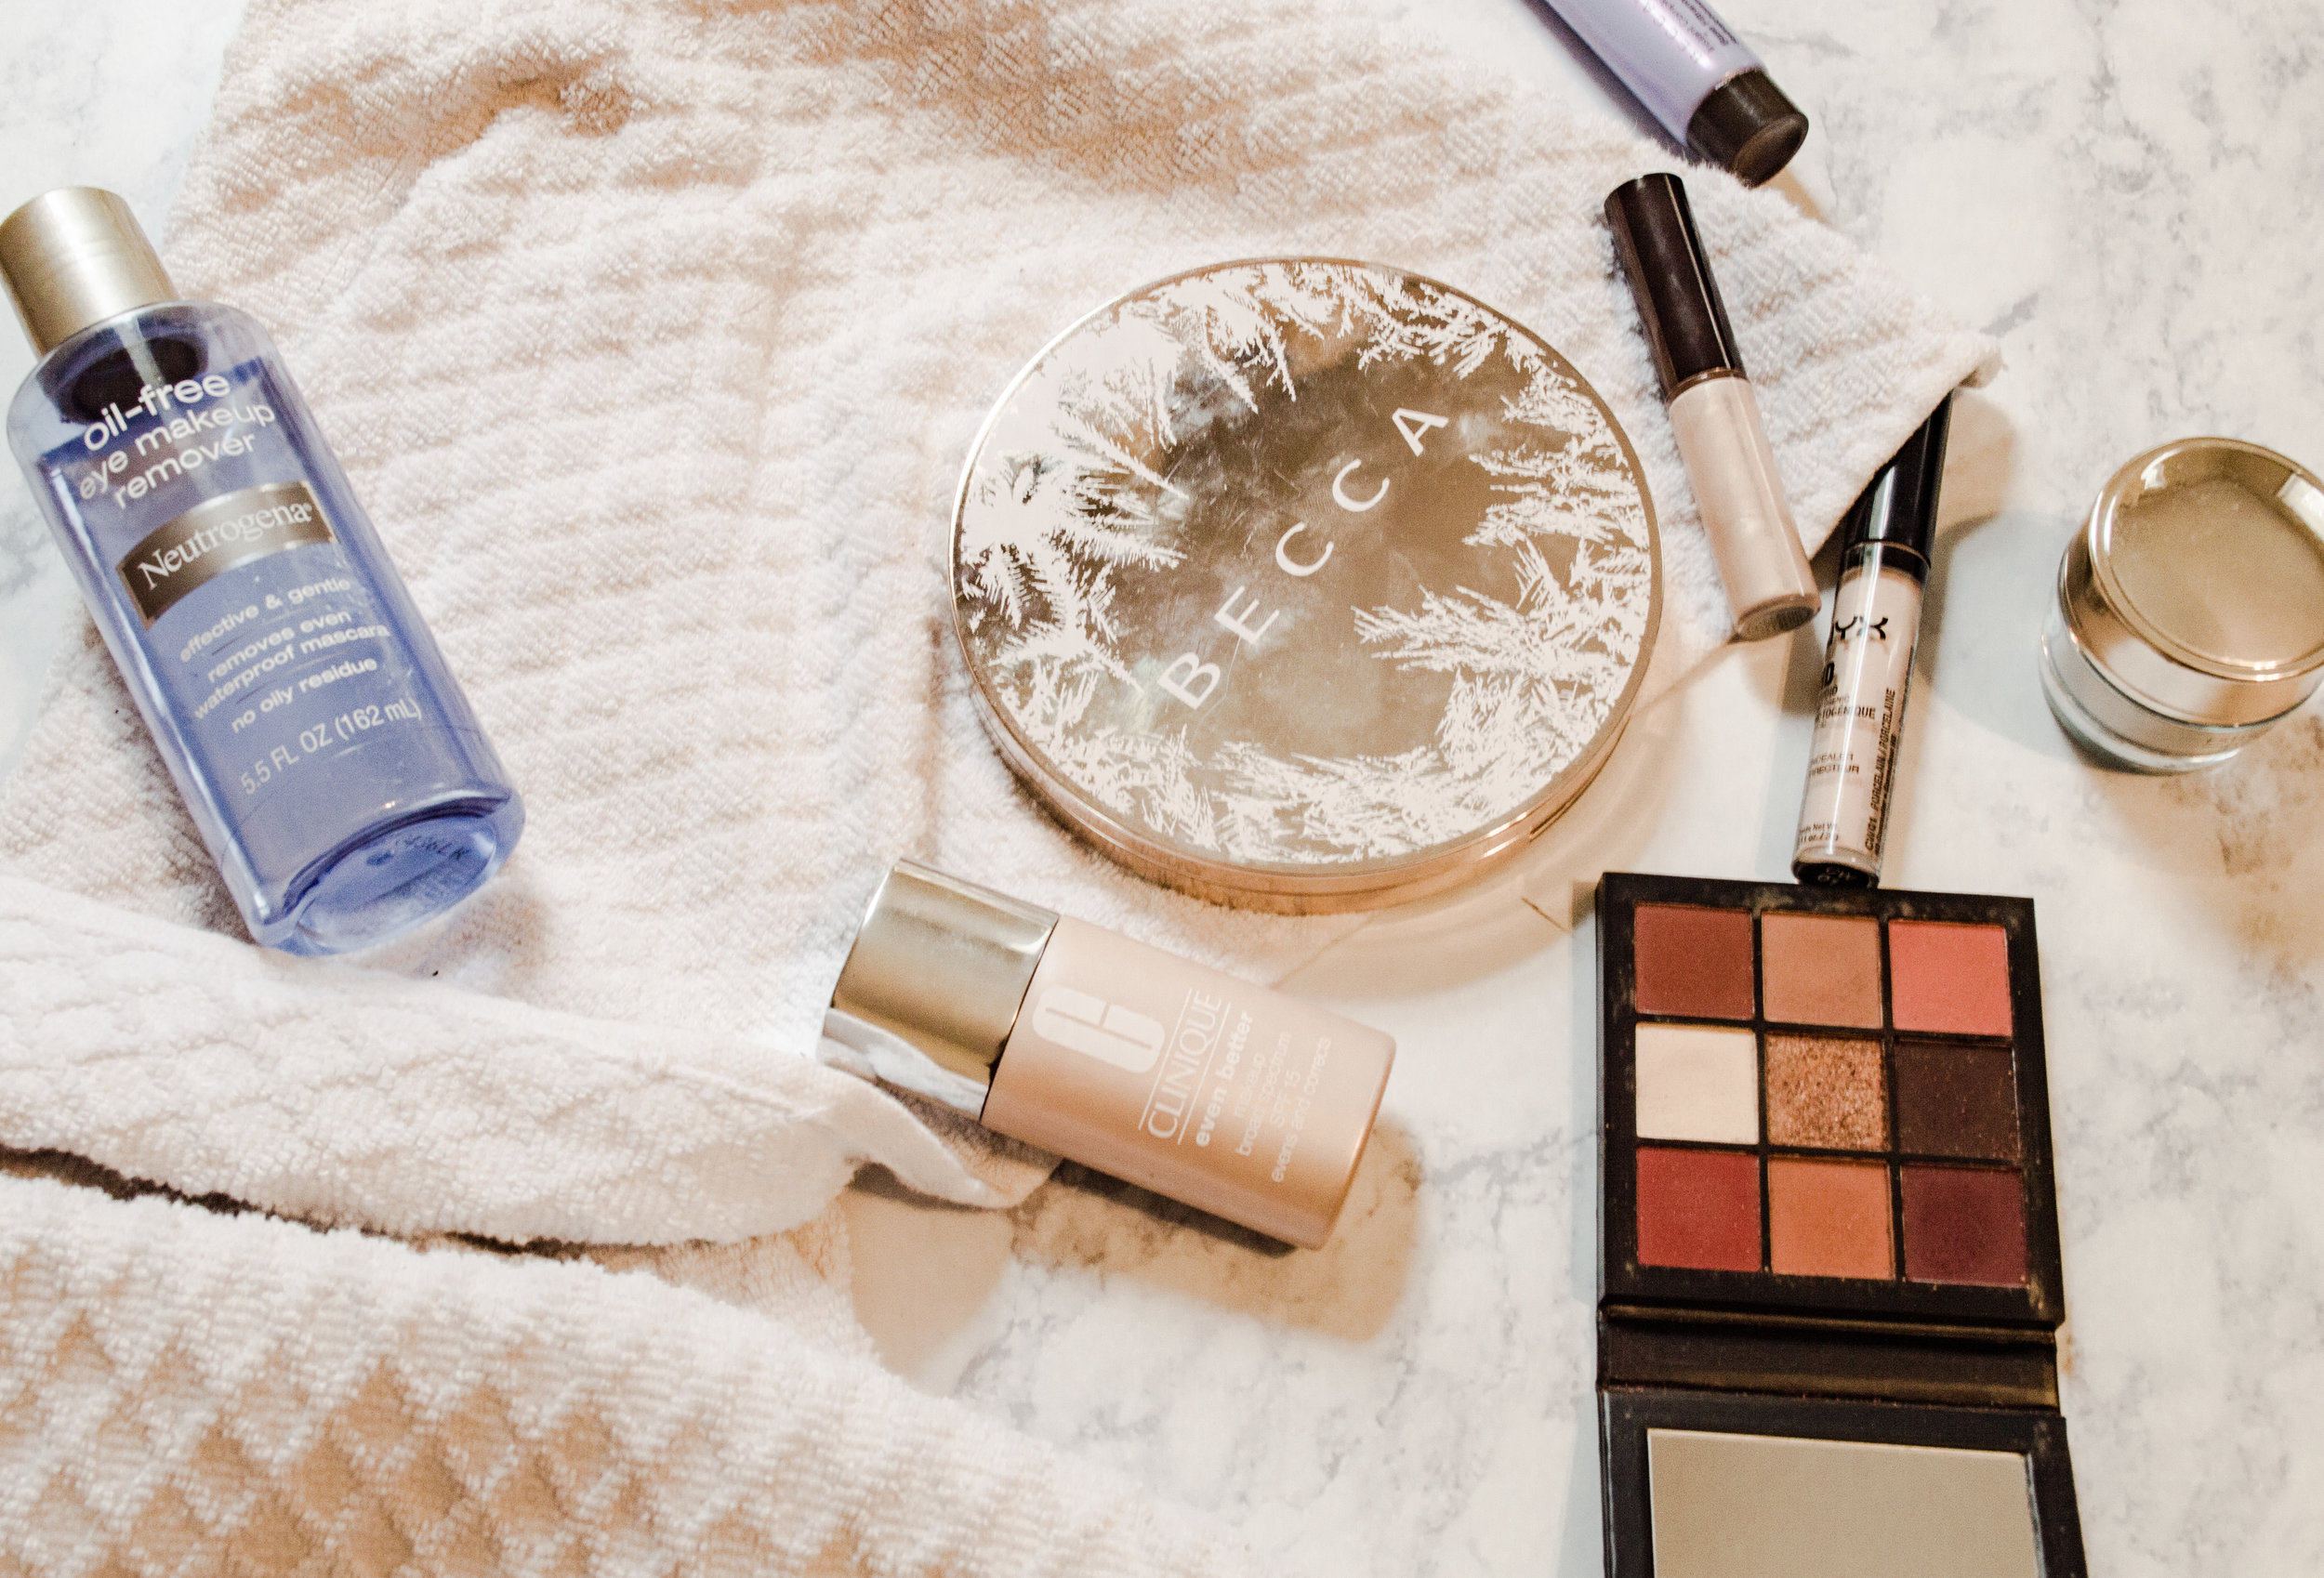 THE BEAUTY BASICS - My favorite routine products